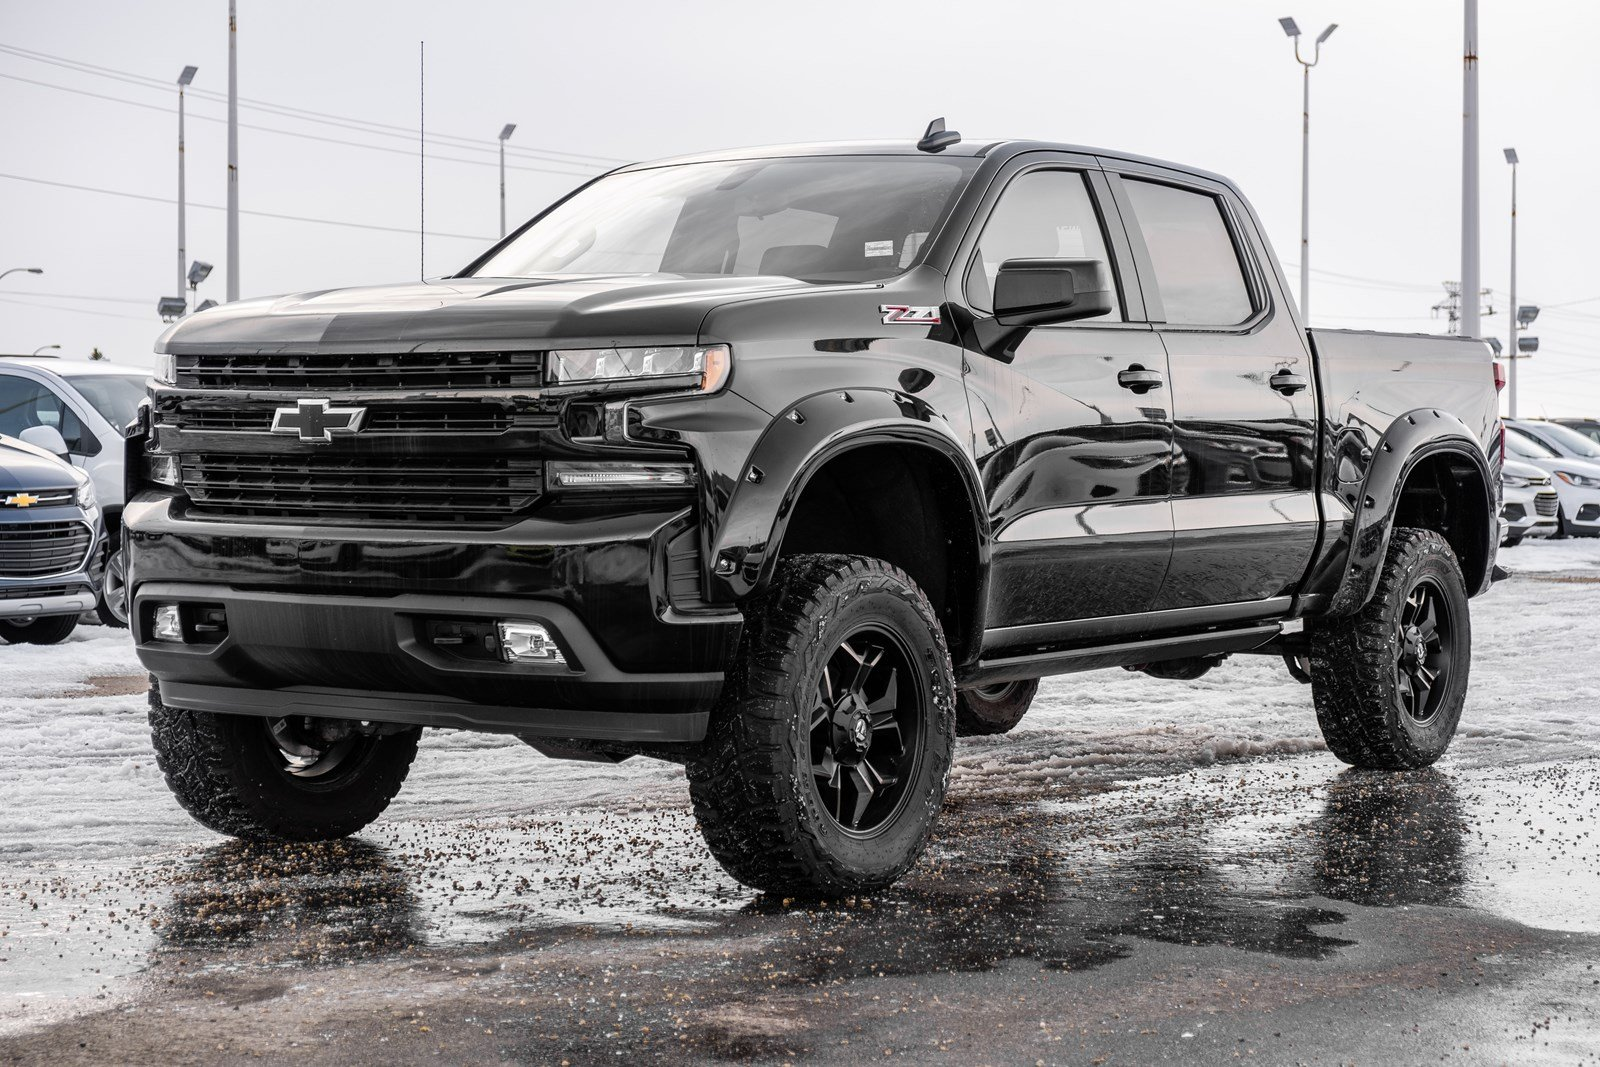 New 2019 Chevrolet Silverado 1500 RST | 6in Lift, 20in Wheels, Perf. Exhaust 4WD Crew Cab Pickup